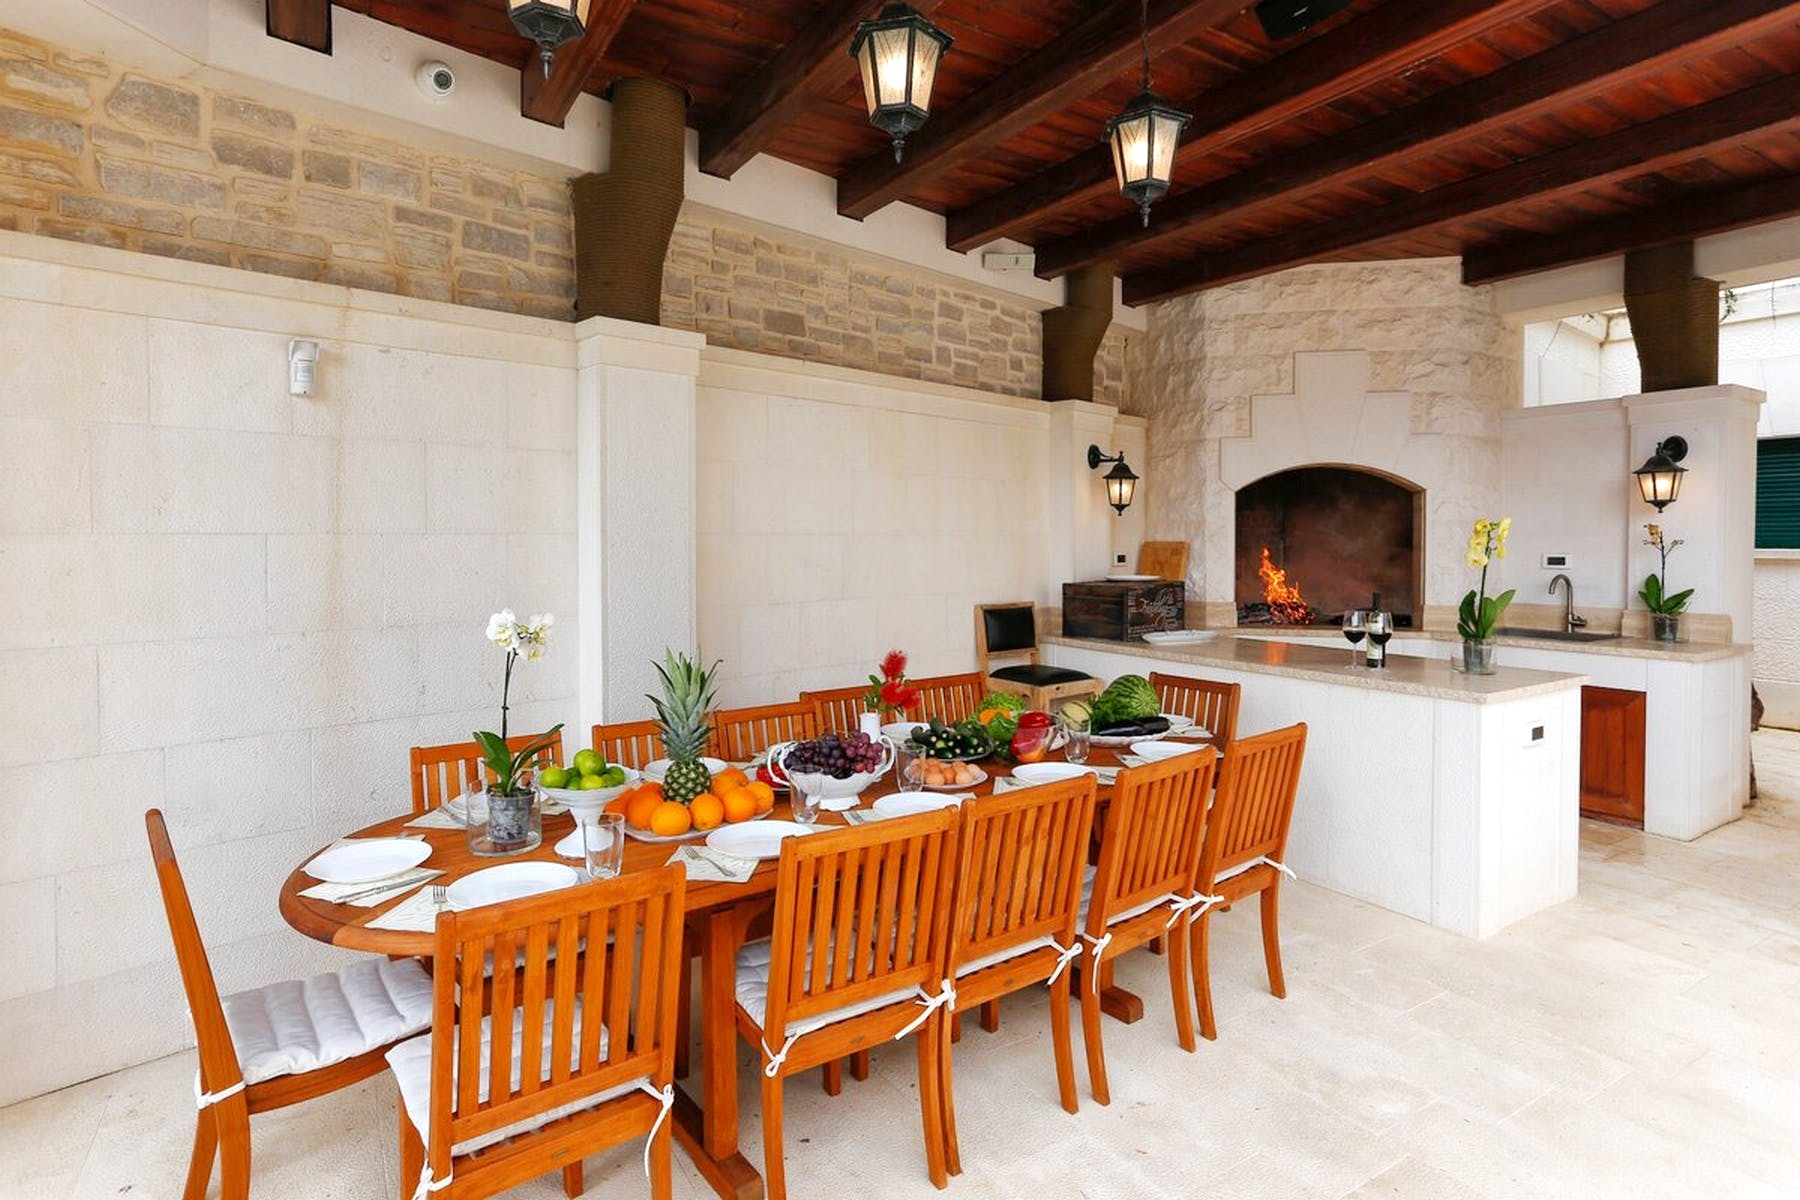 Large outdoor table near the fireplace